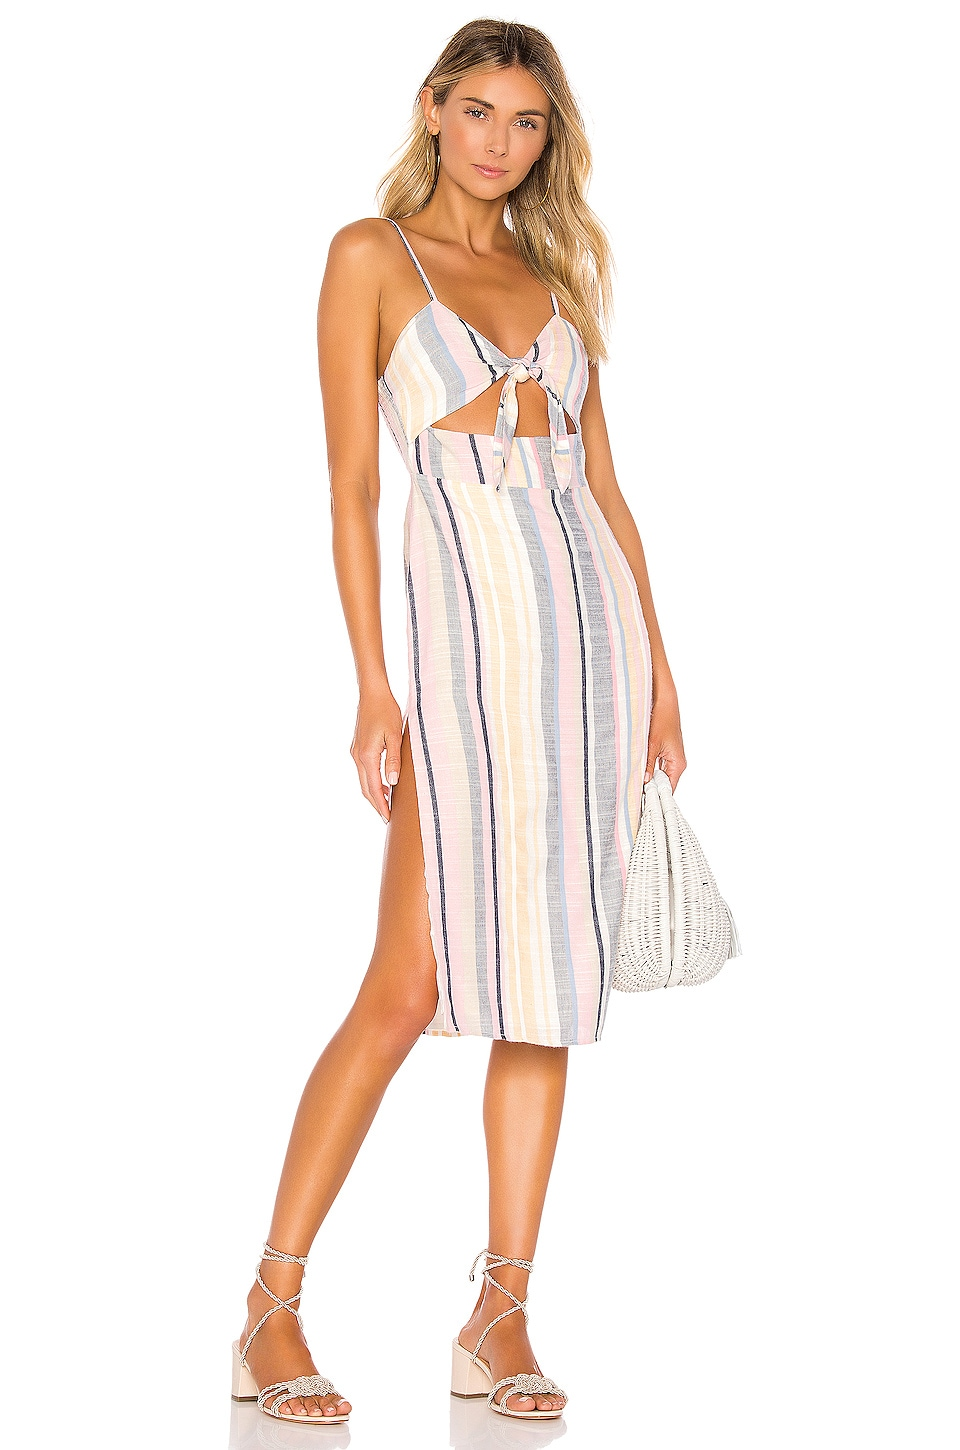 MAJORELLE Seashell Midi Dress in Stripe Multi